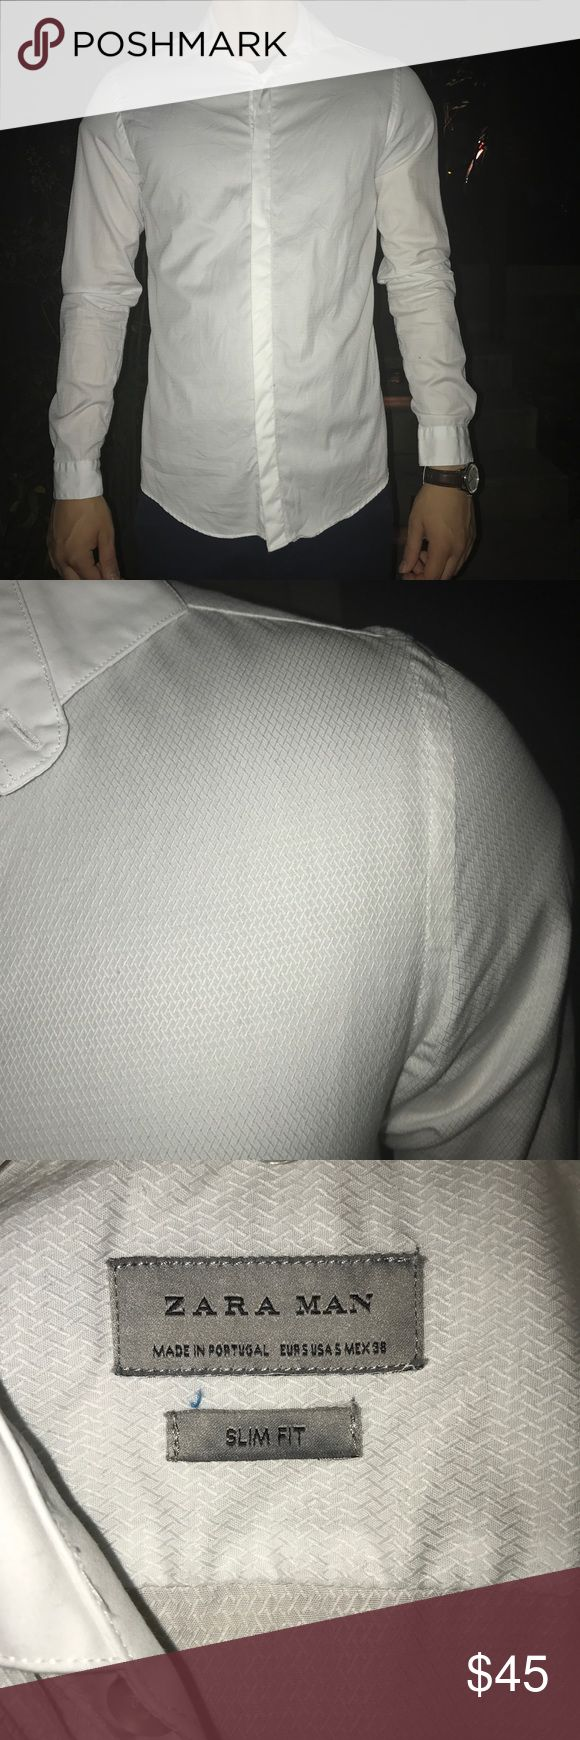 Like New ZARA Man White Slim Fit Dress Shirt Like New white slim fit dress shirt with hidden buttons and subtle texturing for a unique but polished look.  Current season. Size Small. 100% cotton. Perfect condition.  • smoke free home • cheaper on ♏️ • bundle to save on shipping • Zara Shirts Dress Shirts